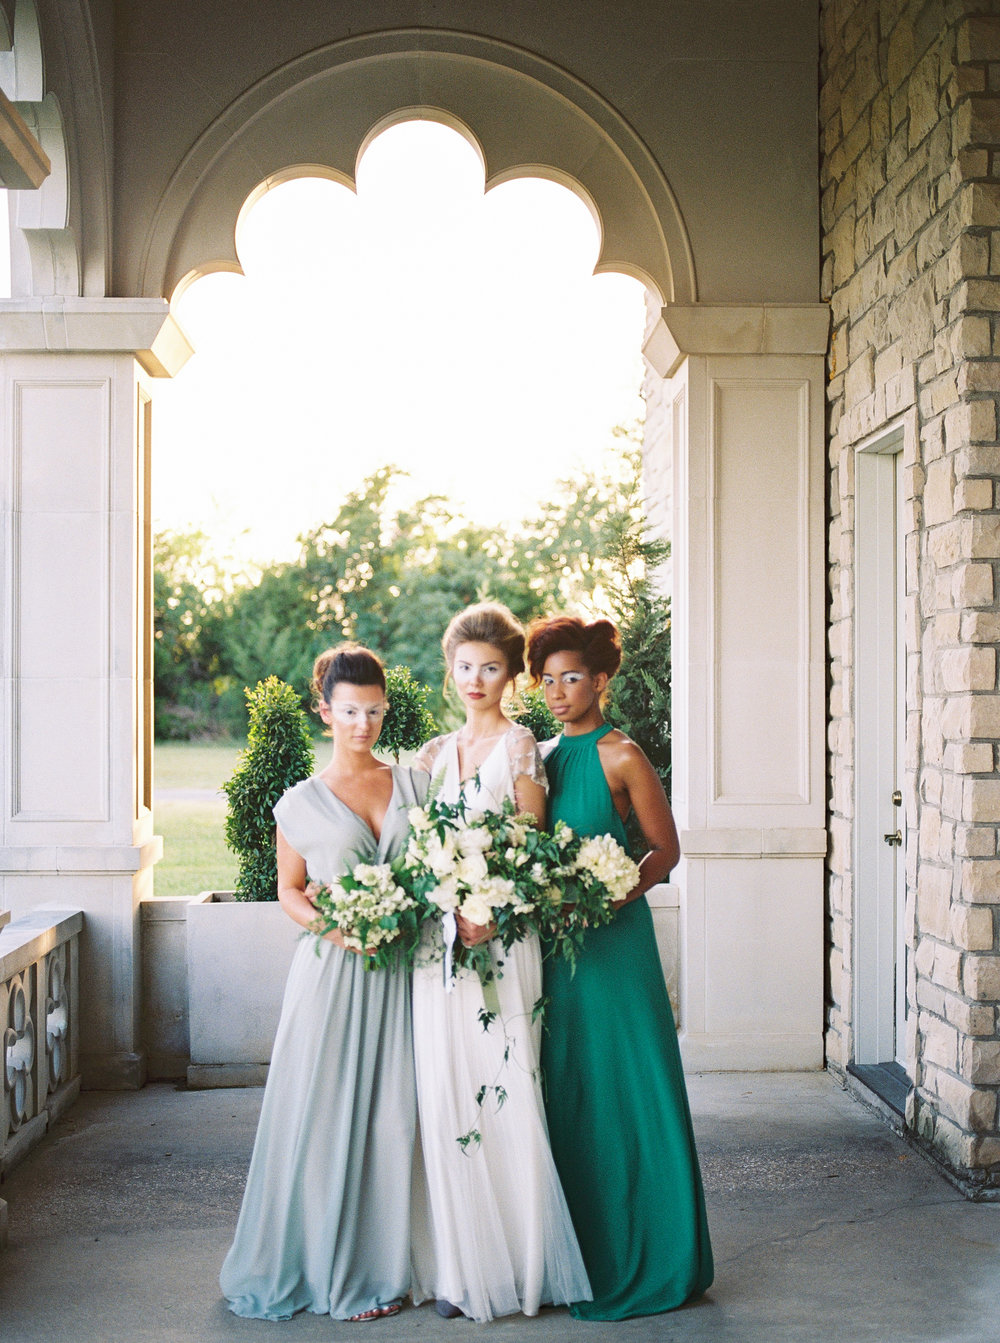 Green and white castle wedding inspiration by Columbus, Ohio wedding planner Meggie Francisco. Photo by Tracy Enoch.